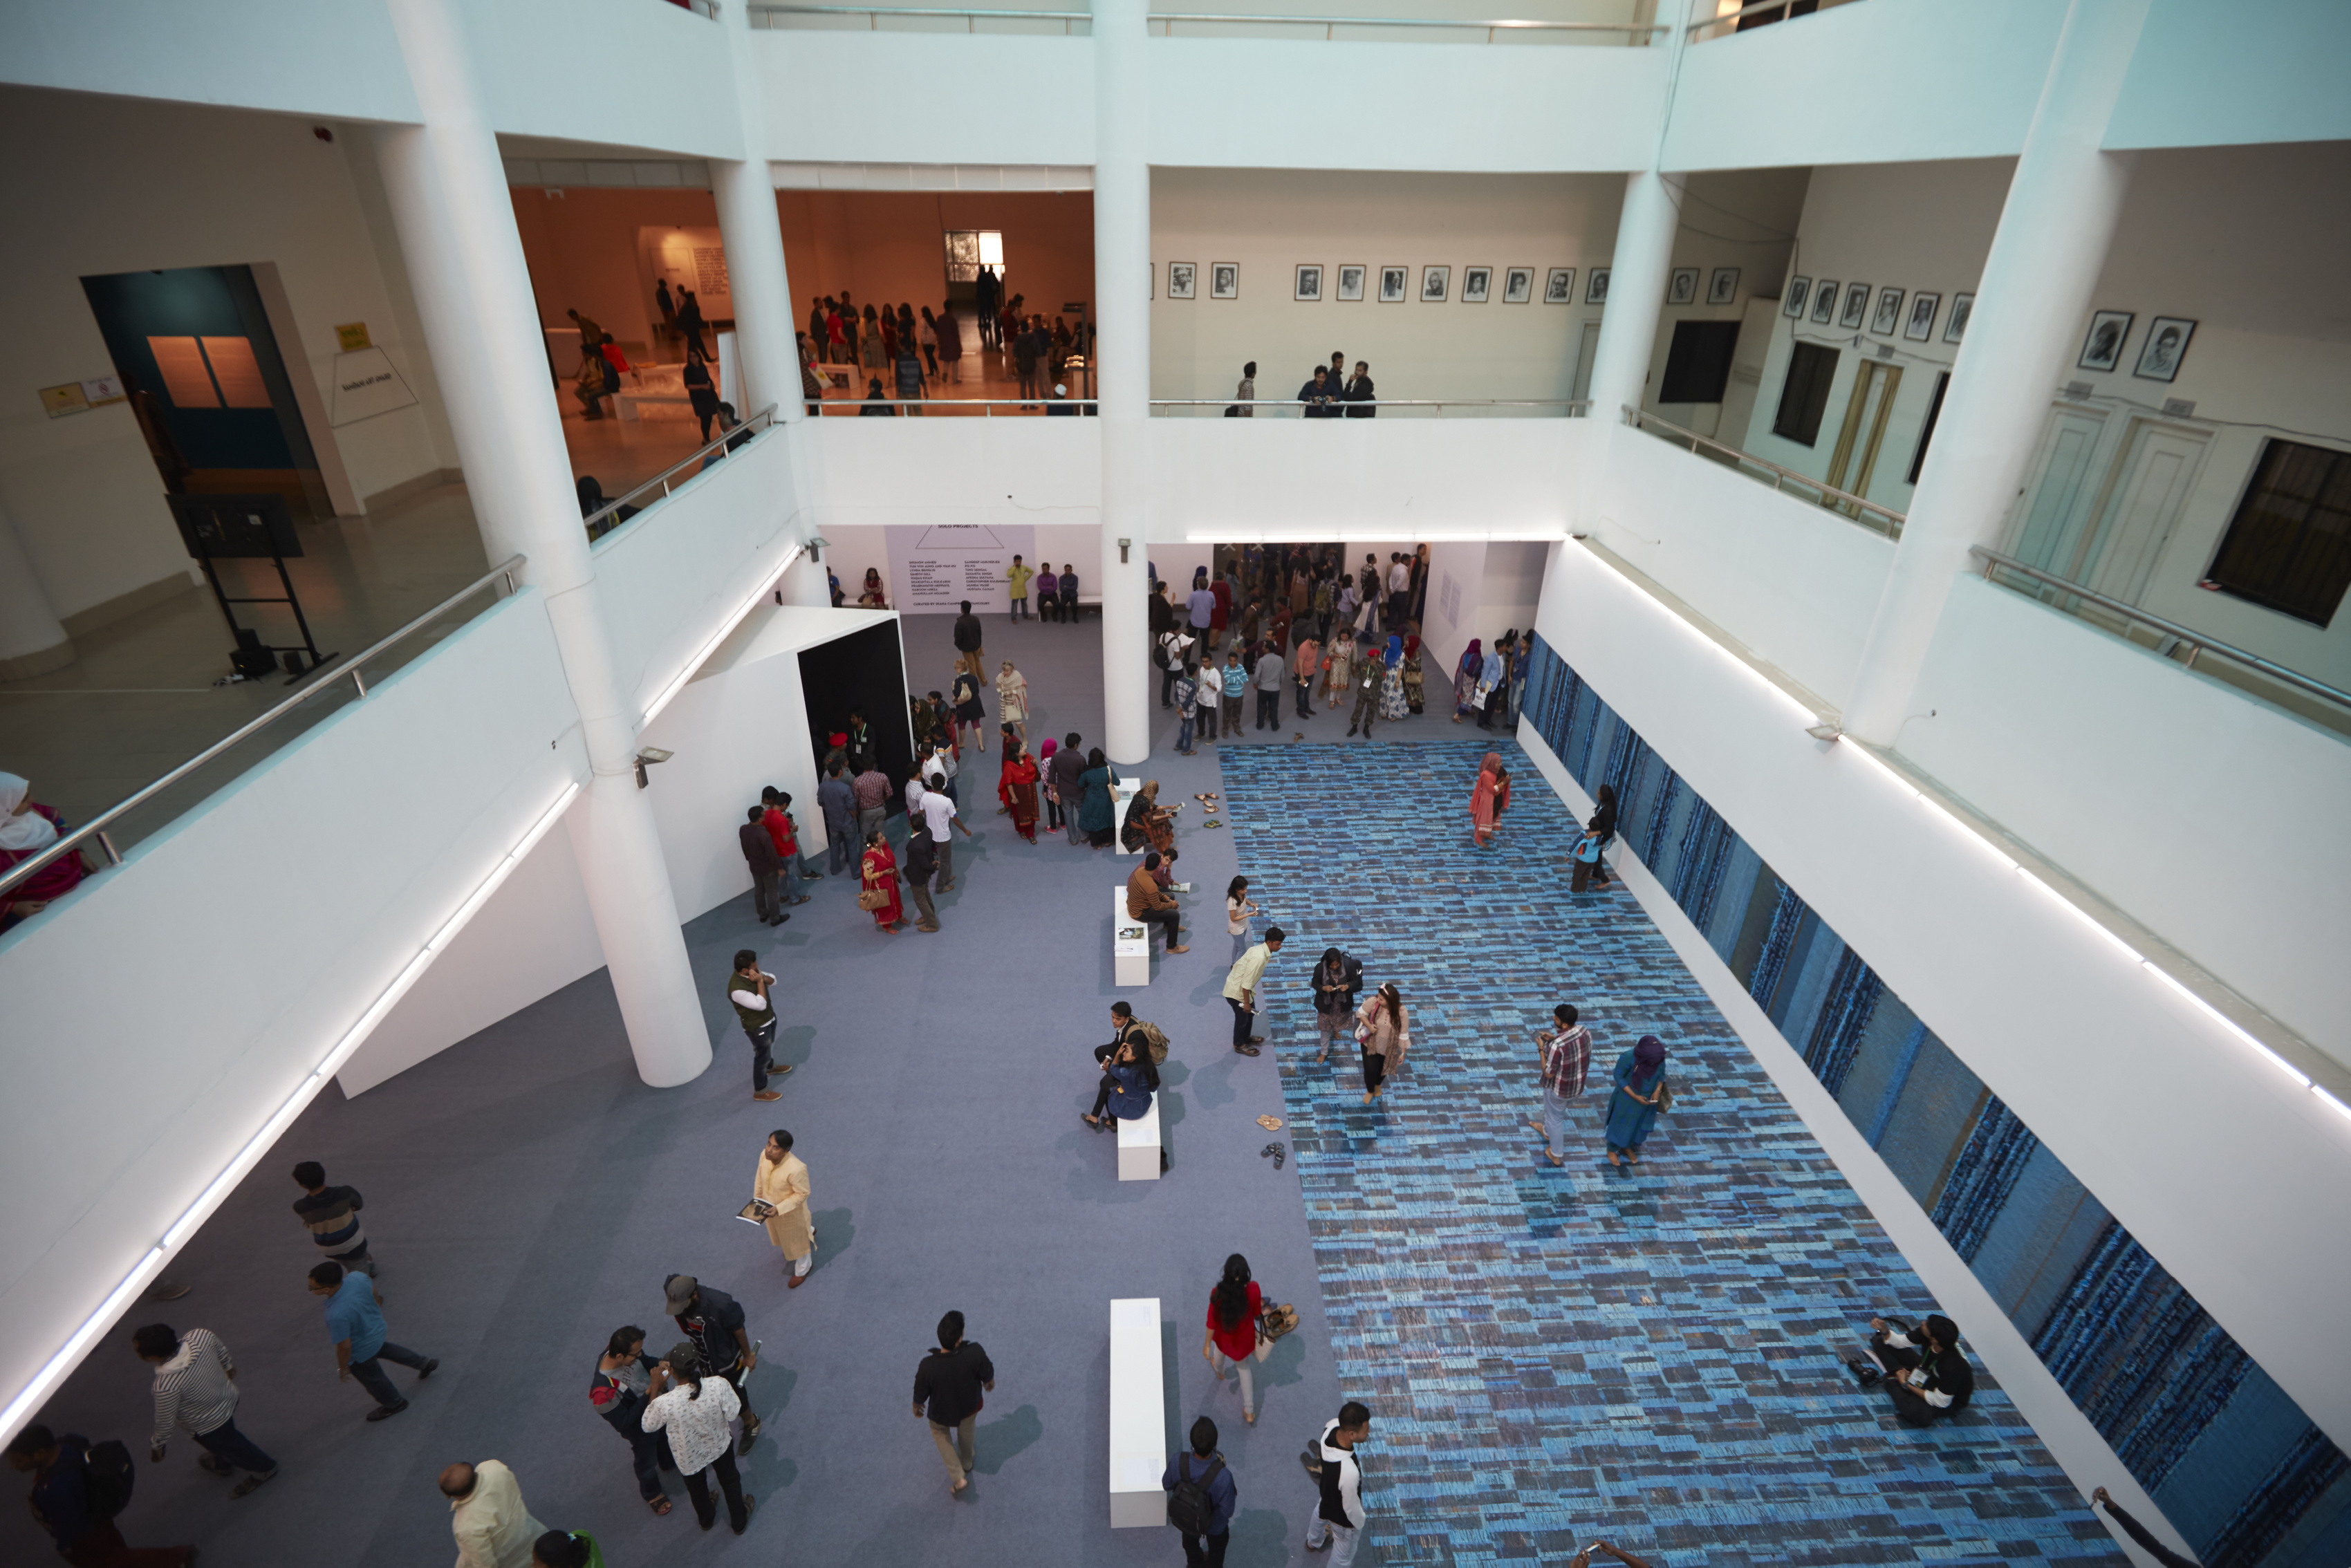 Dhaka Art Summit 2016. Courtesy of the Dhaka Art Summit and the Samdani Art Foundation